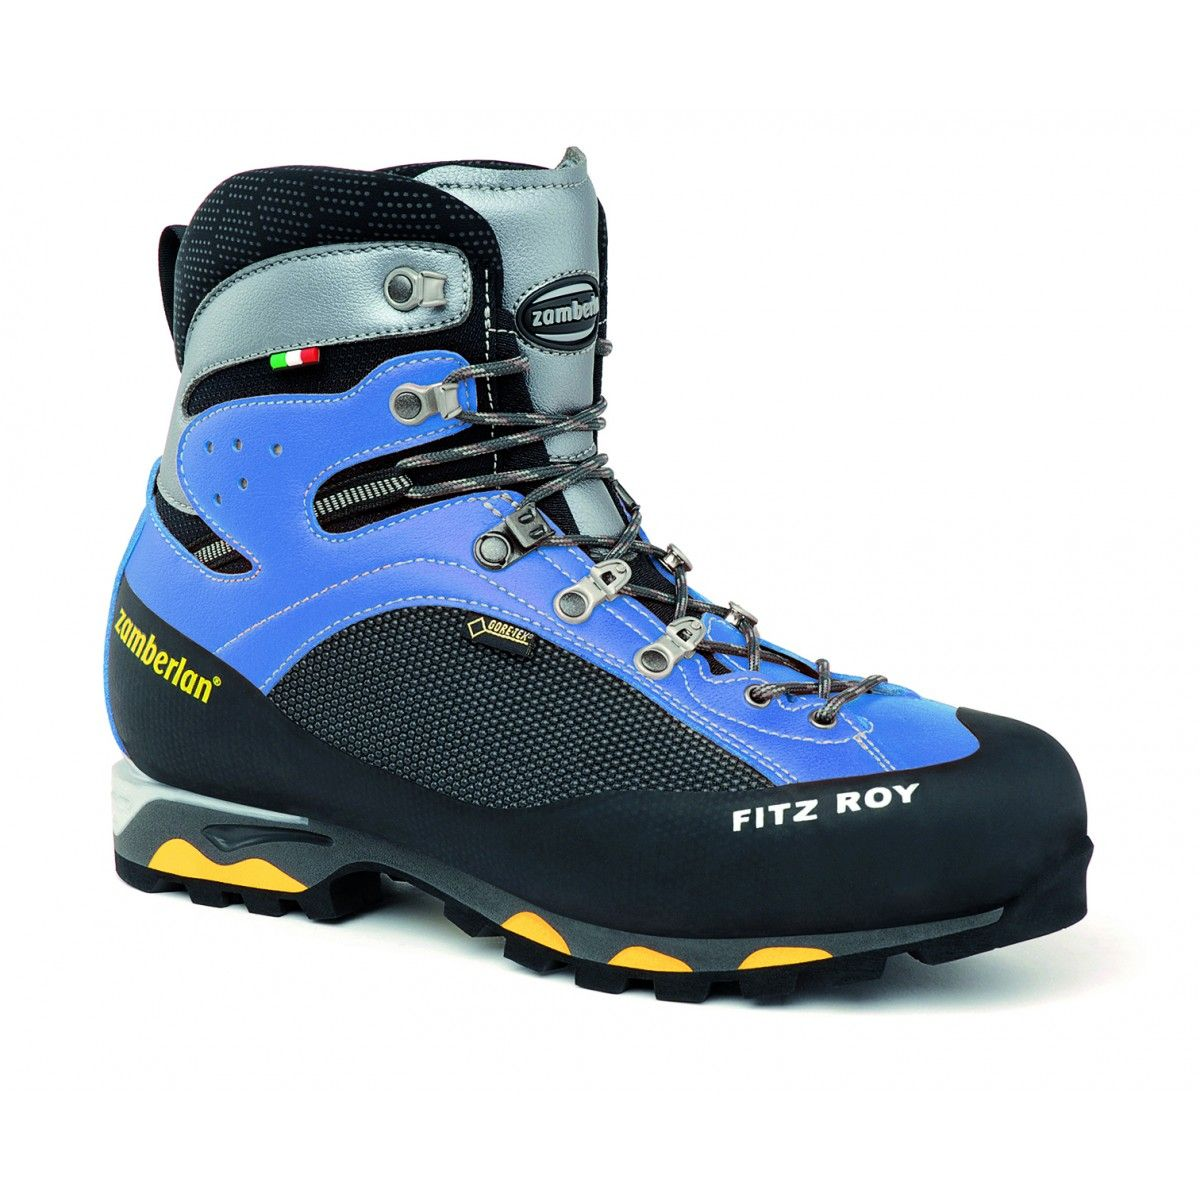 2050 FITZ ROY GTX RR WNS - Perfect boot for alpine mountaineering and via ferrata. MicroFibre and Ceramic Cordura upper, robust and light. Compact boot with a dynamic design, easy to wear and flexible. Stable platform with Vibram® Mulaz outsole. #zamberlan #alpine #fitz #roy #fitzroy #wns